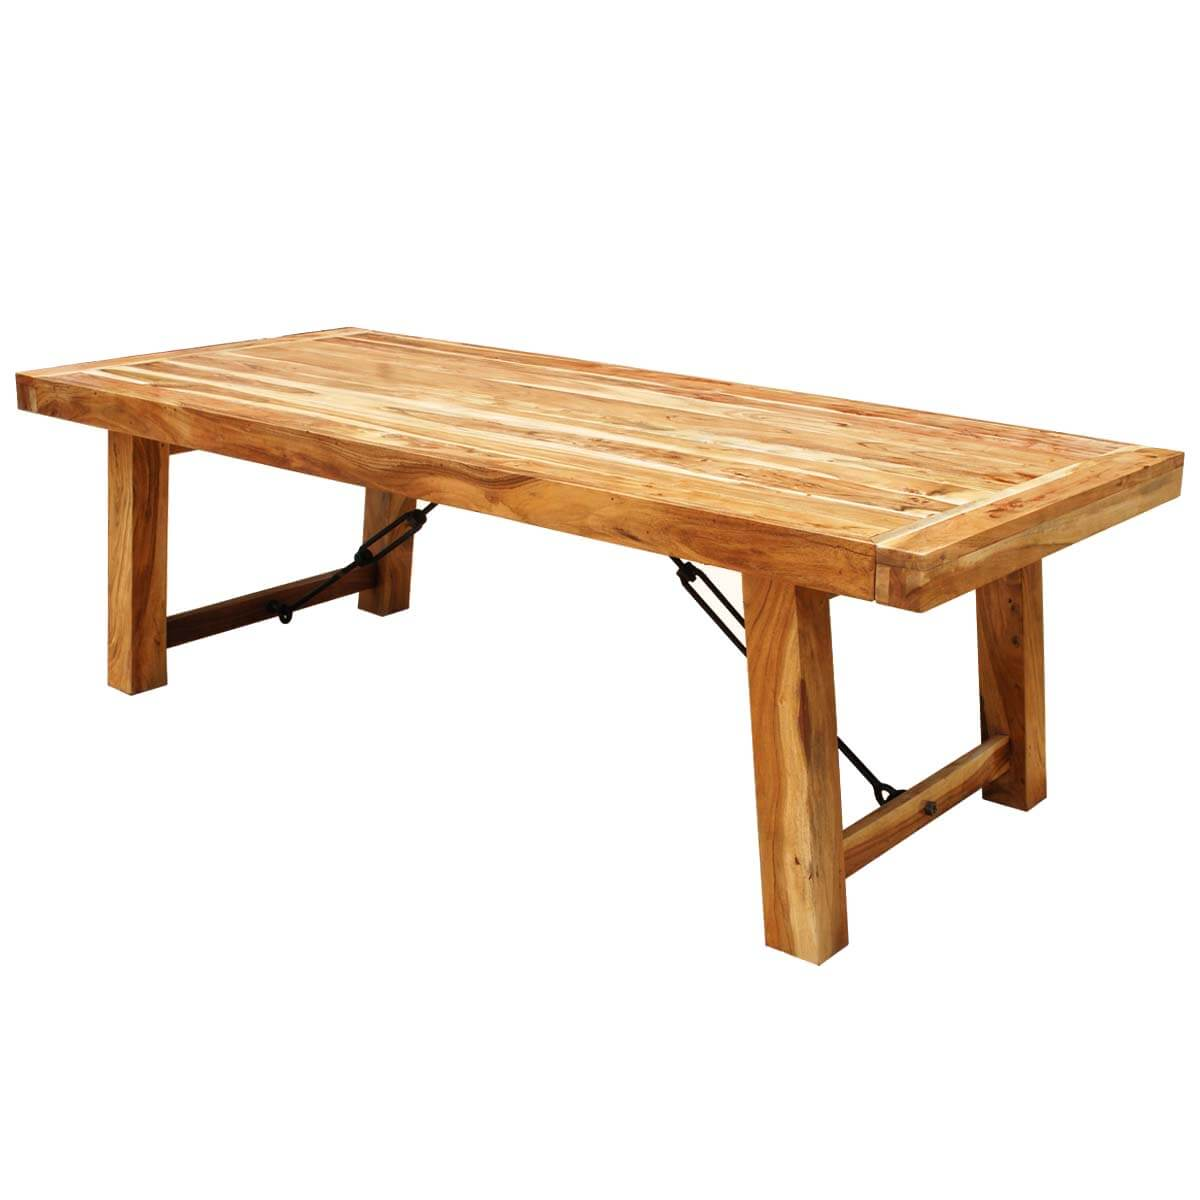 rustic wood large santa fe dining room table w extensions With large rustic dining room table